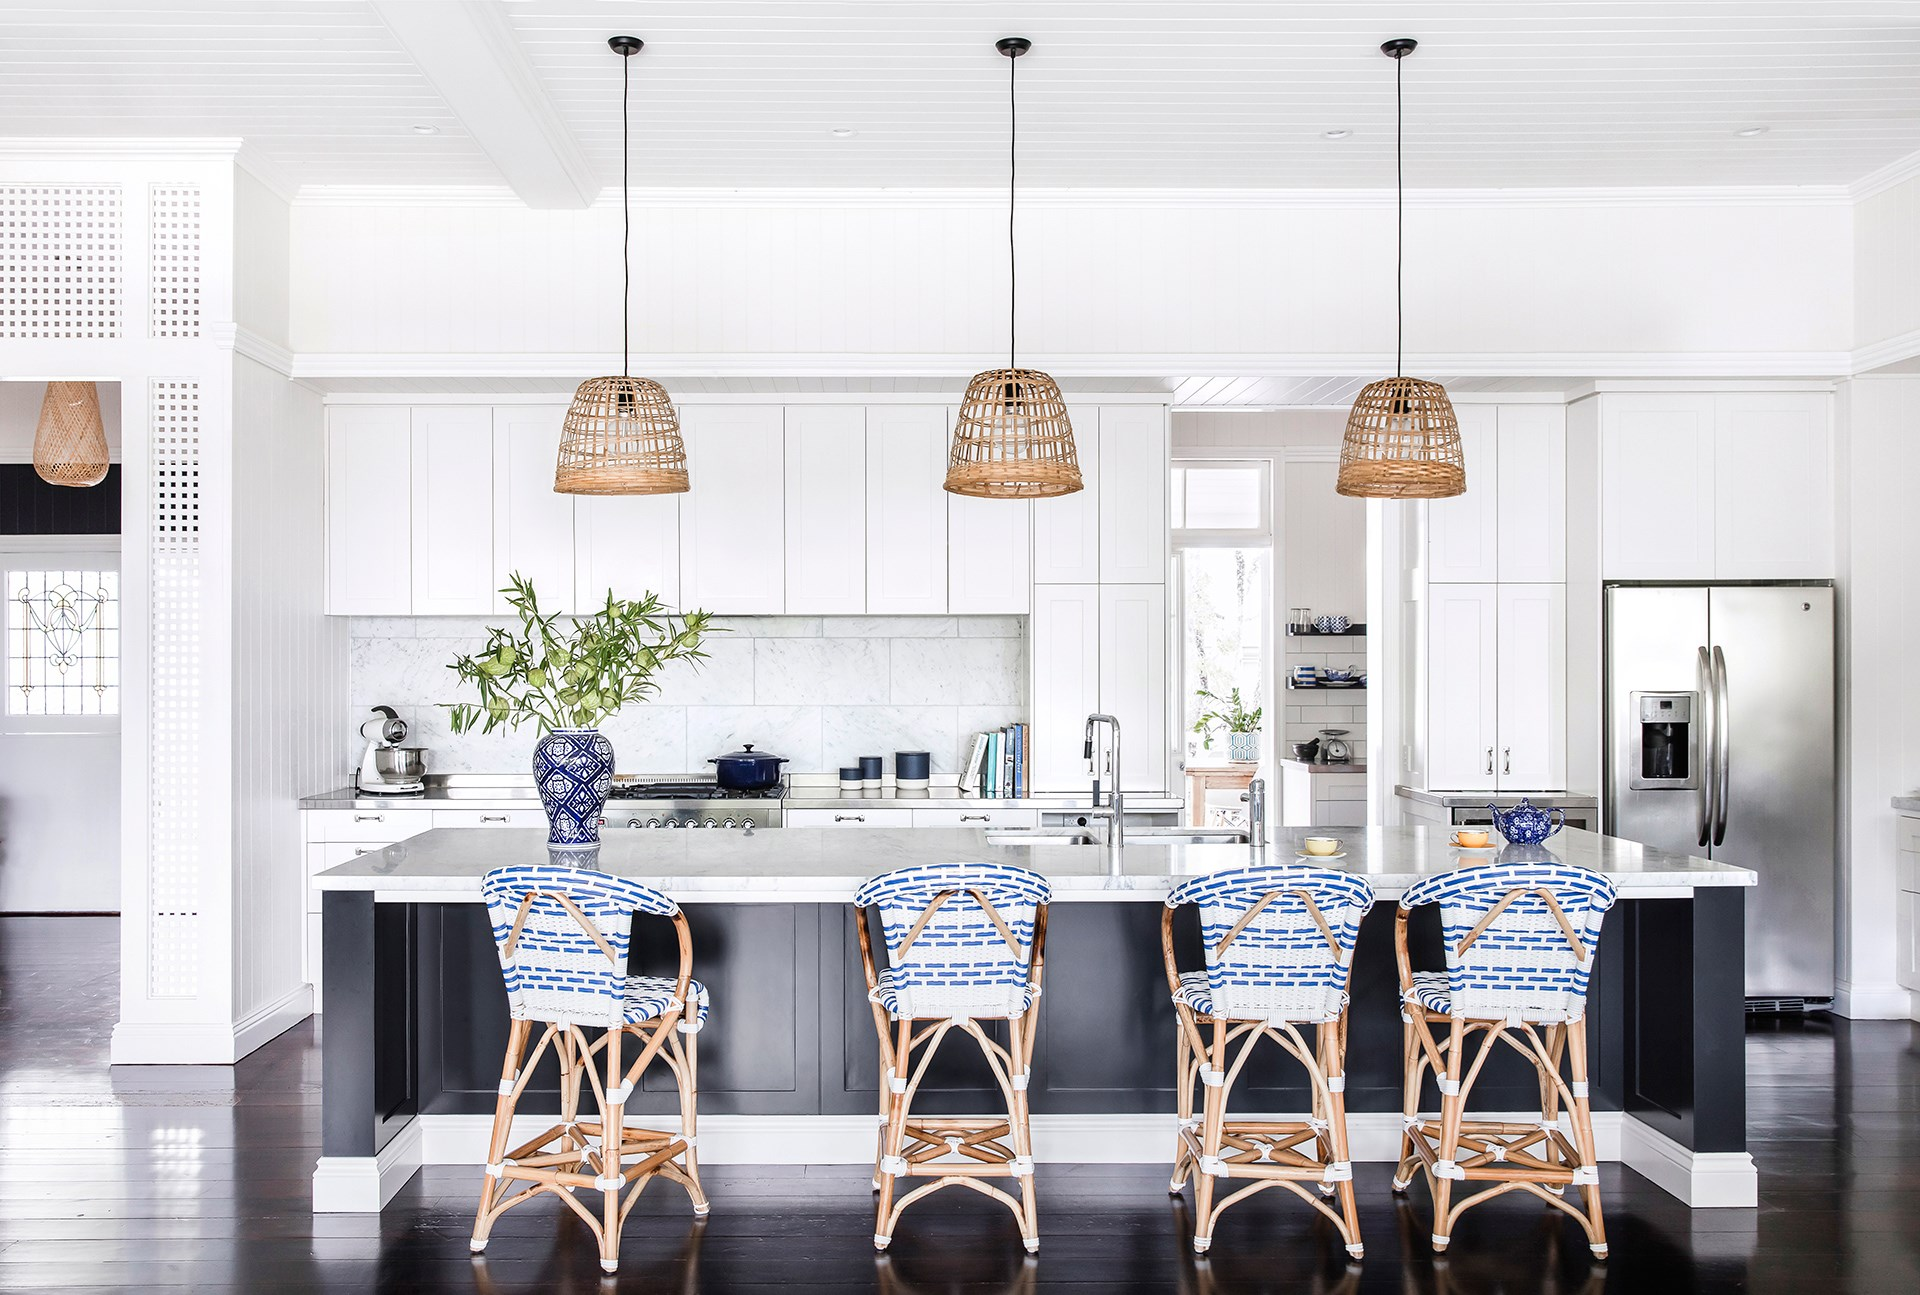 The classic lines of this Hamptons-style kitchen within a [refreshed 1920s Queenslander](http://www.homestolove.com.au/a-refreshed-1920s-queenslander-4363) are softened with the addition of cane and wicker, which adds a summery, comfortable feel. *Photo: Maree Homer*